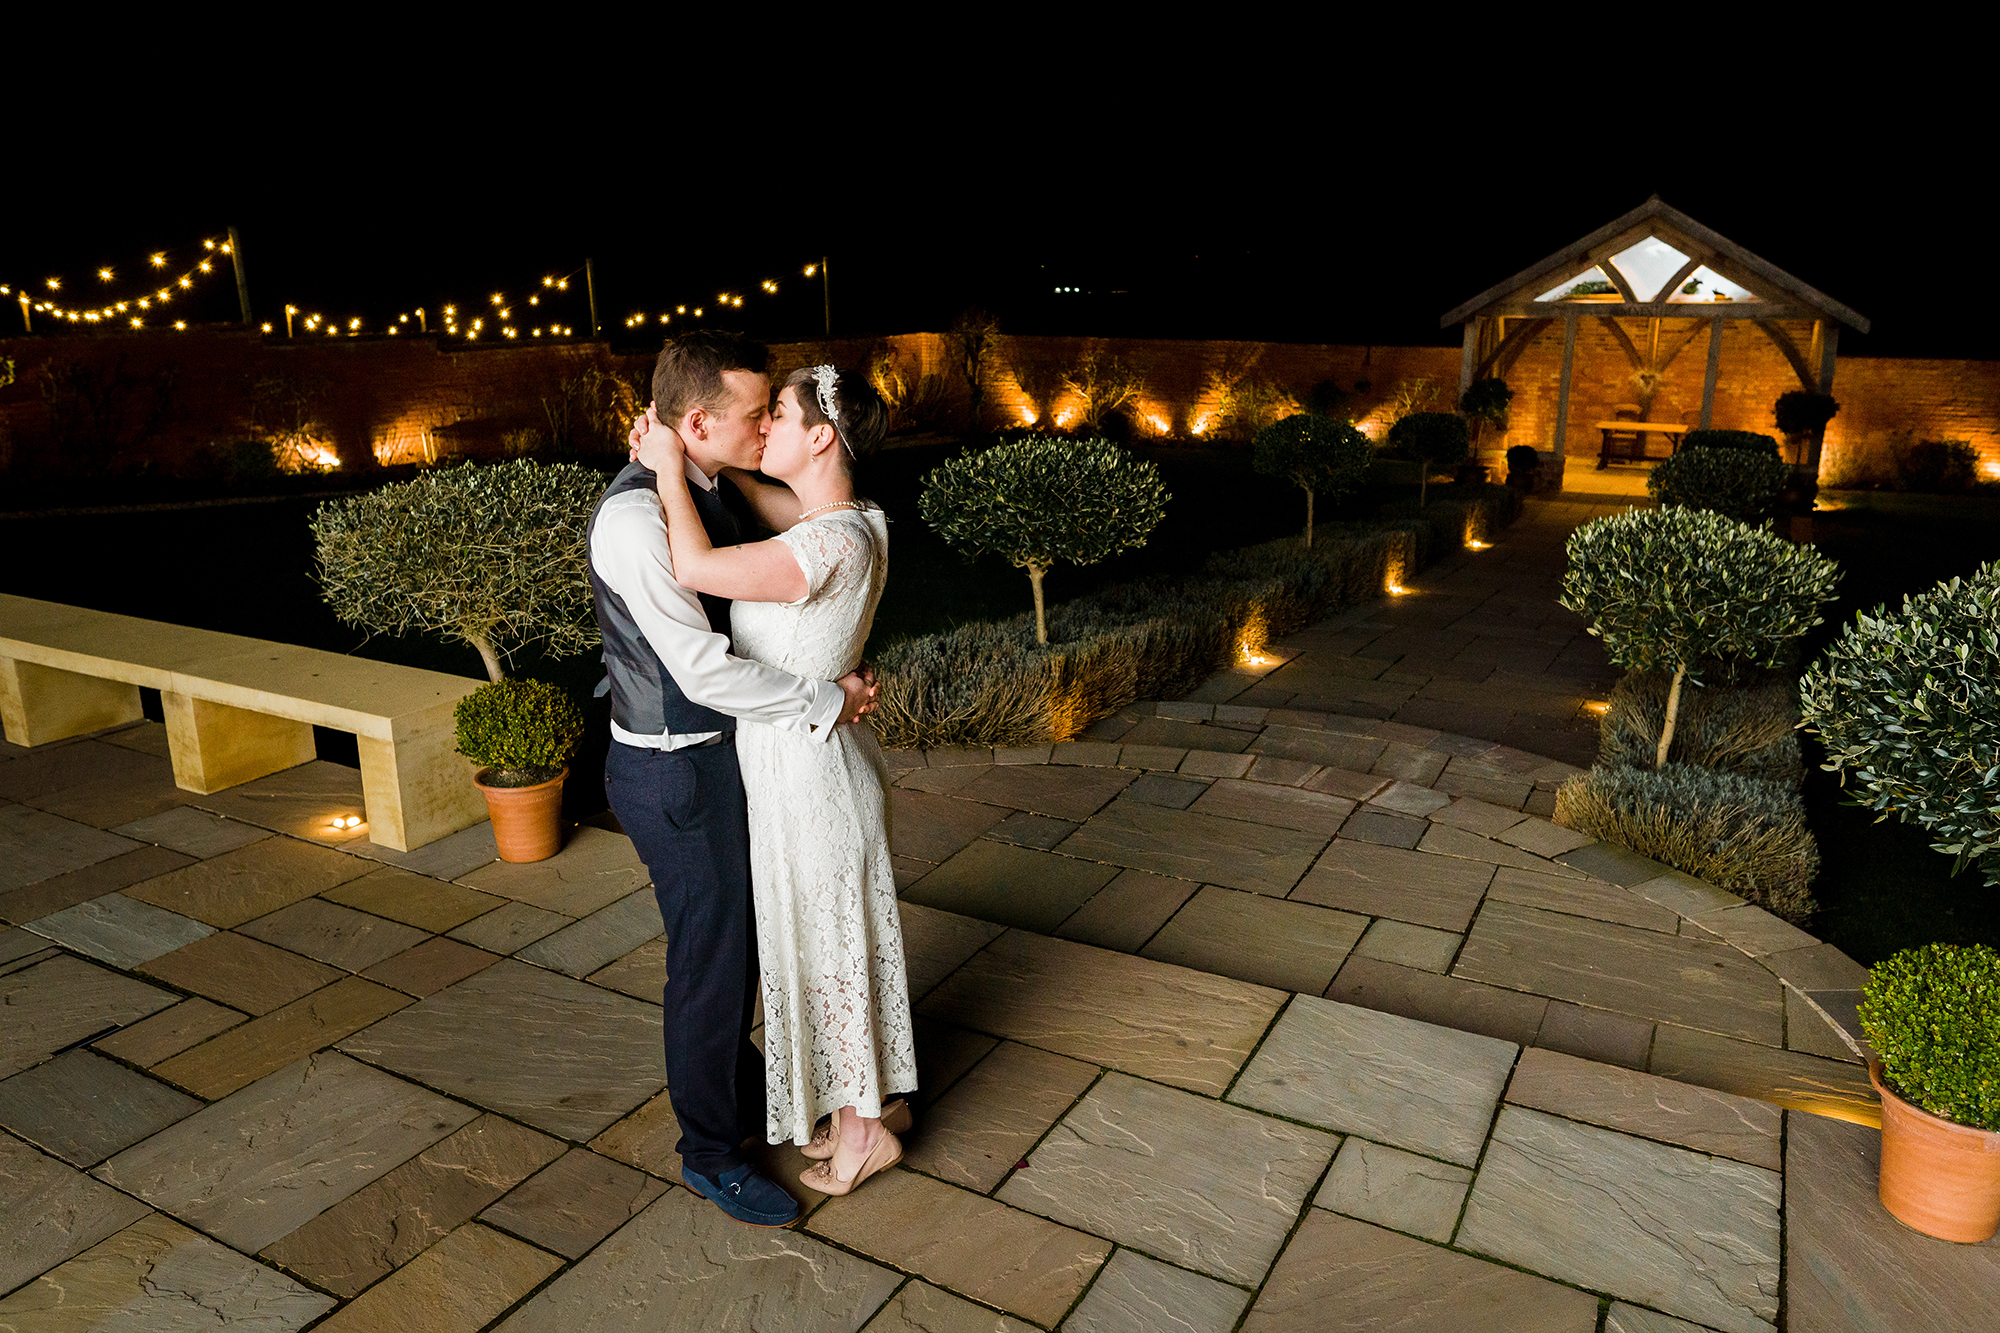 Bride and Groom kiss in romanticlly lit Walled Garden at night